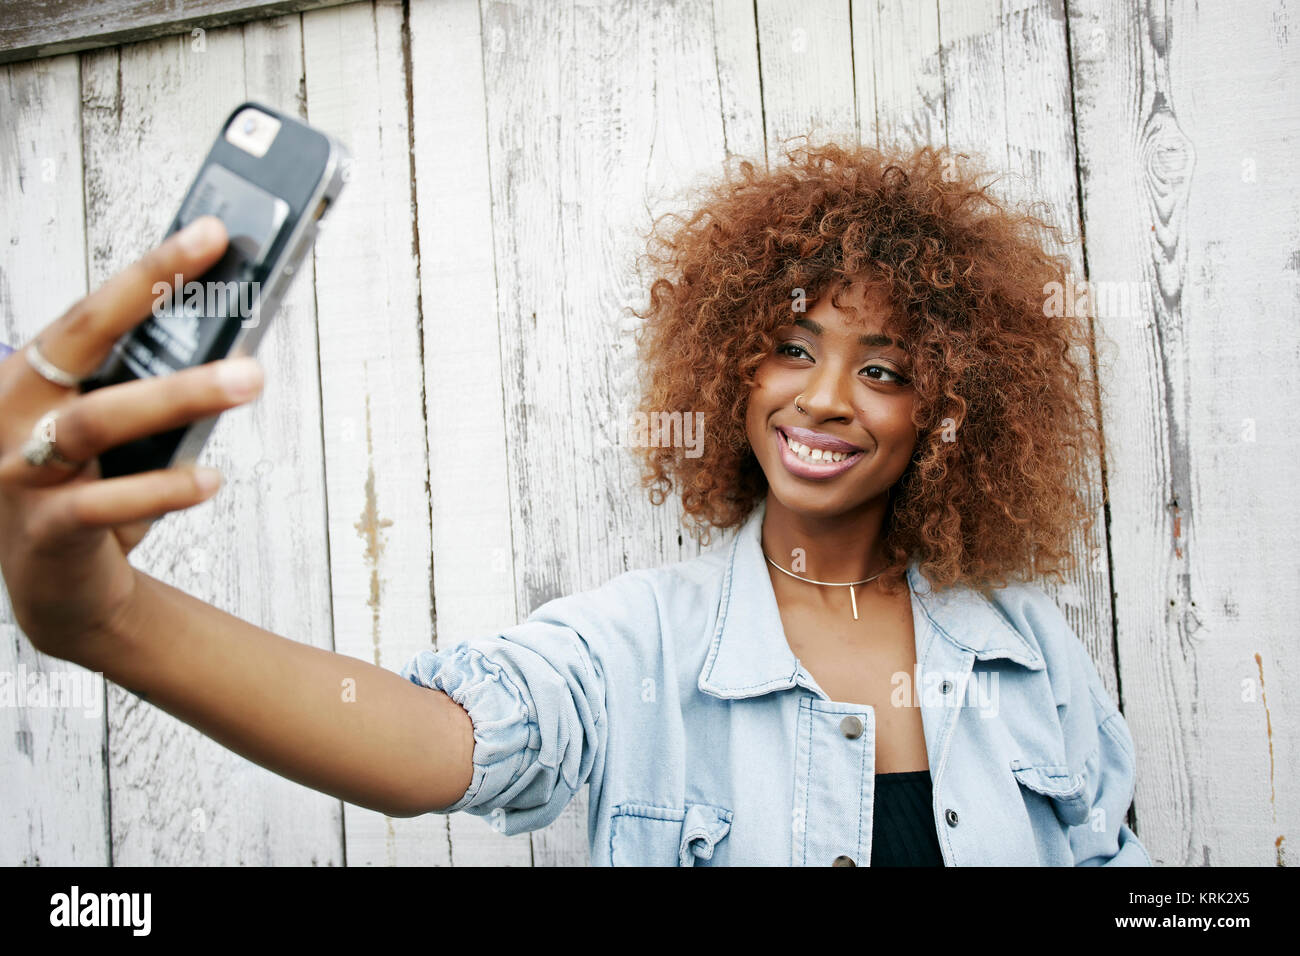 Black woman posing for cell phone selfie - Stock Image